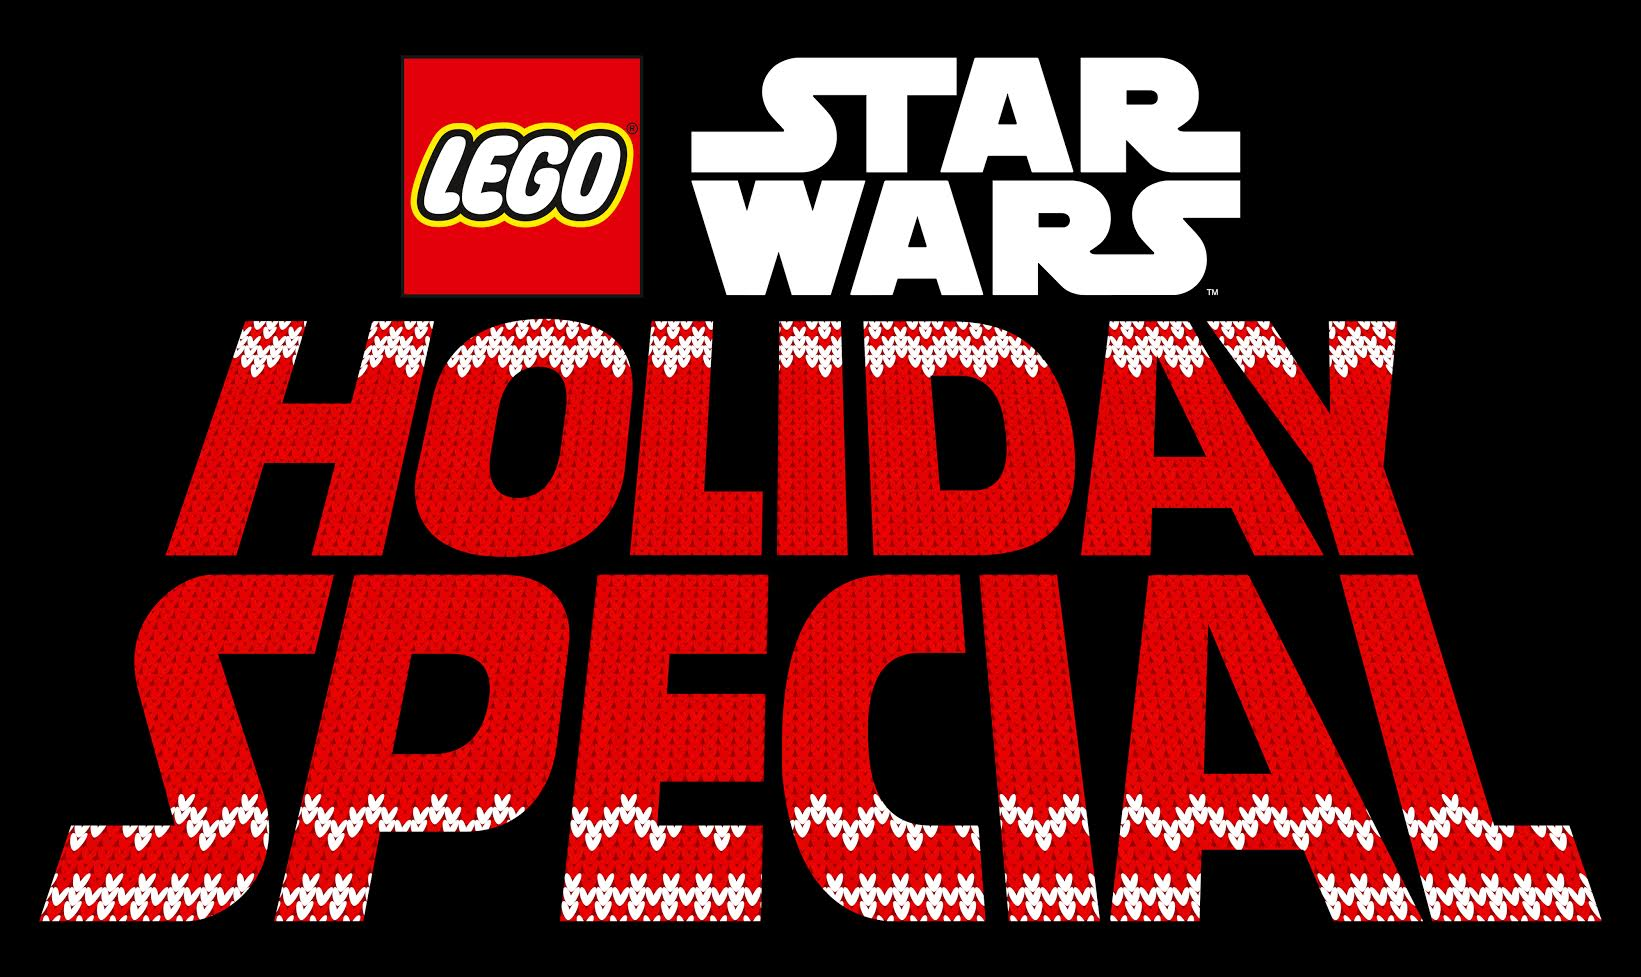 STAR WARS: The LEGO Holiday Special Is Coming to Disney+